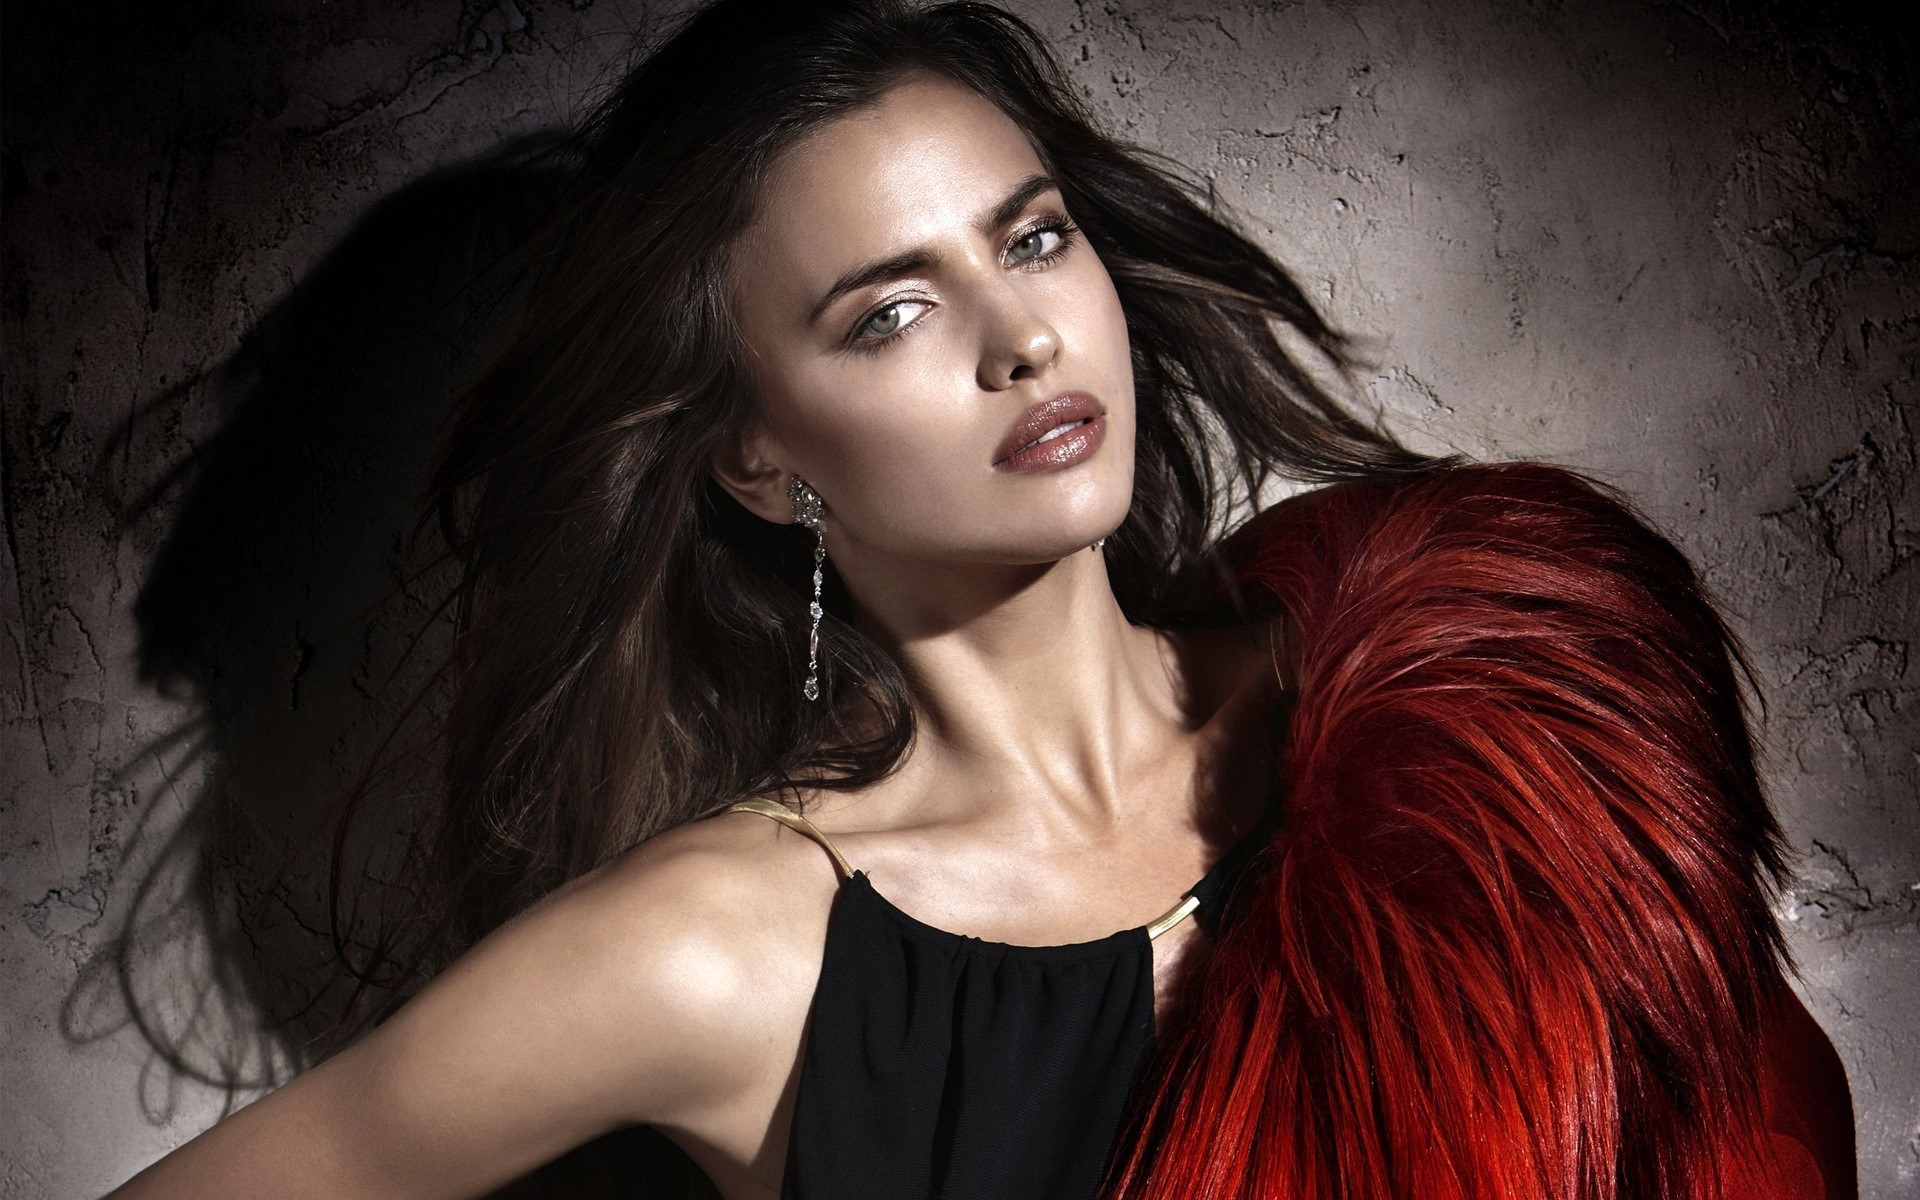 Wallpaper Irina Shayk